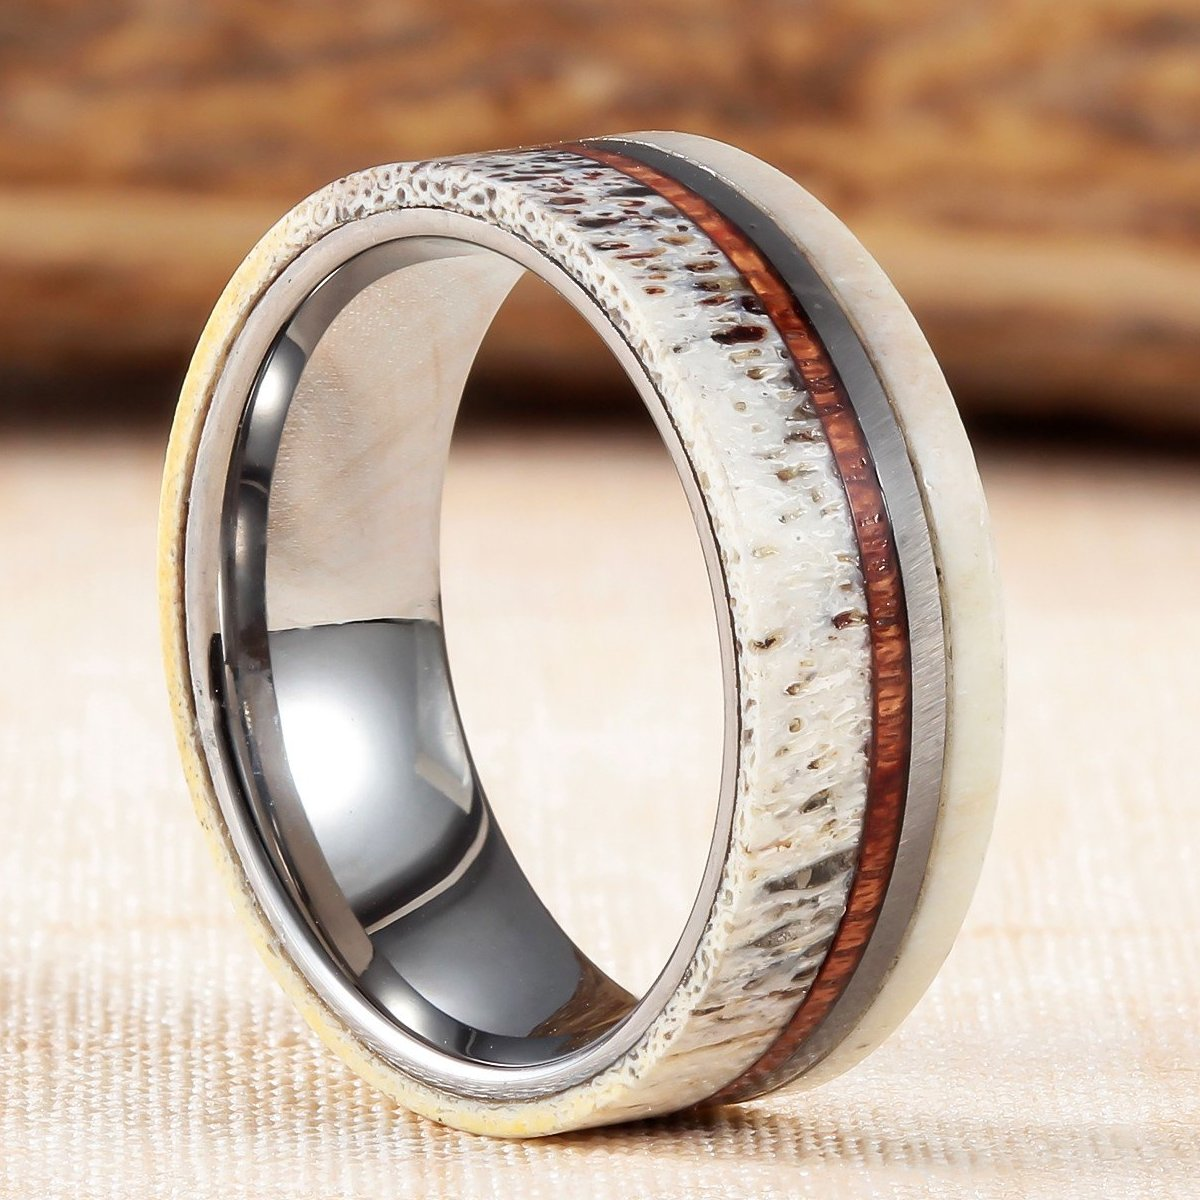 Antler Rings Deer Antler Wedding Rings Camo Rings for Men